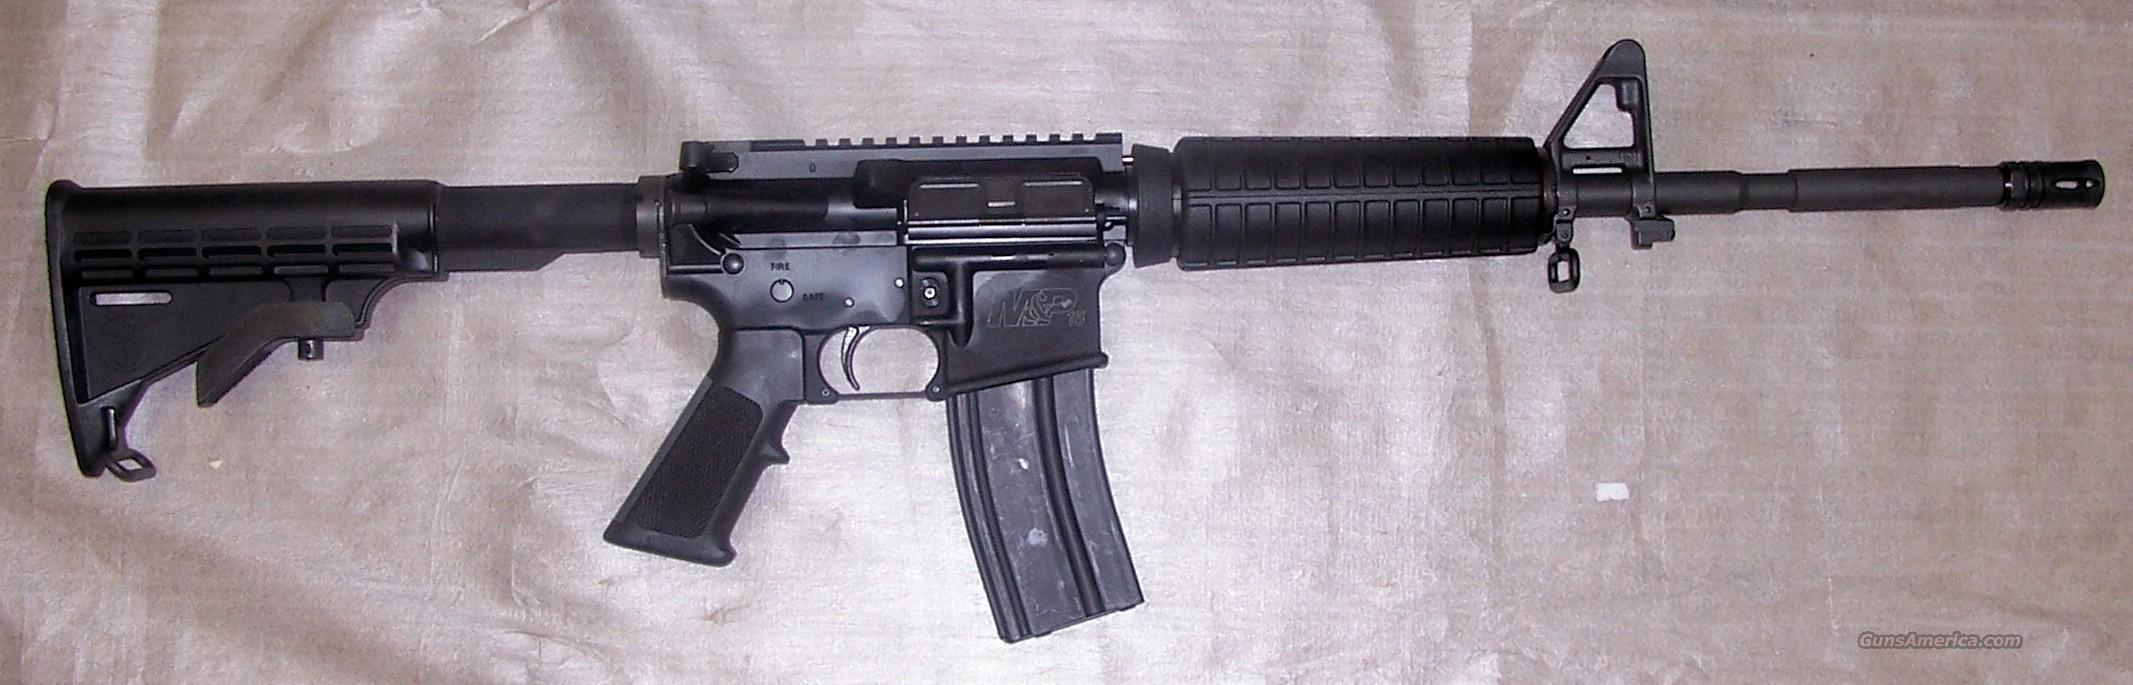 Smith & Wesson M&P15R 5.45X39 caliber  Guns > Rifles > AR-15 Rifles - Small Manufacturers > Complete Rifle